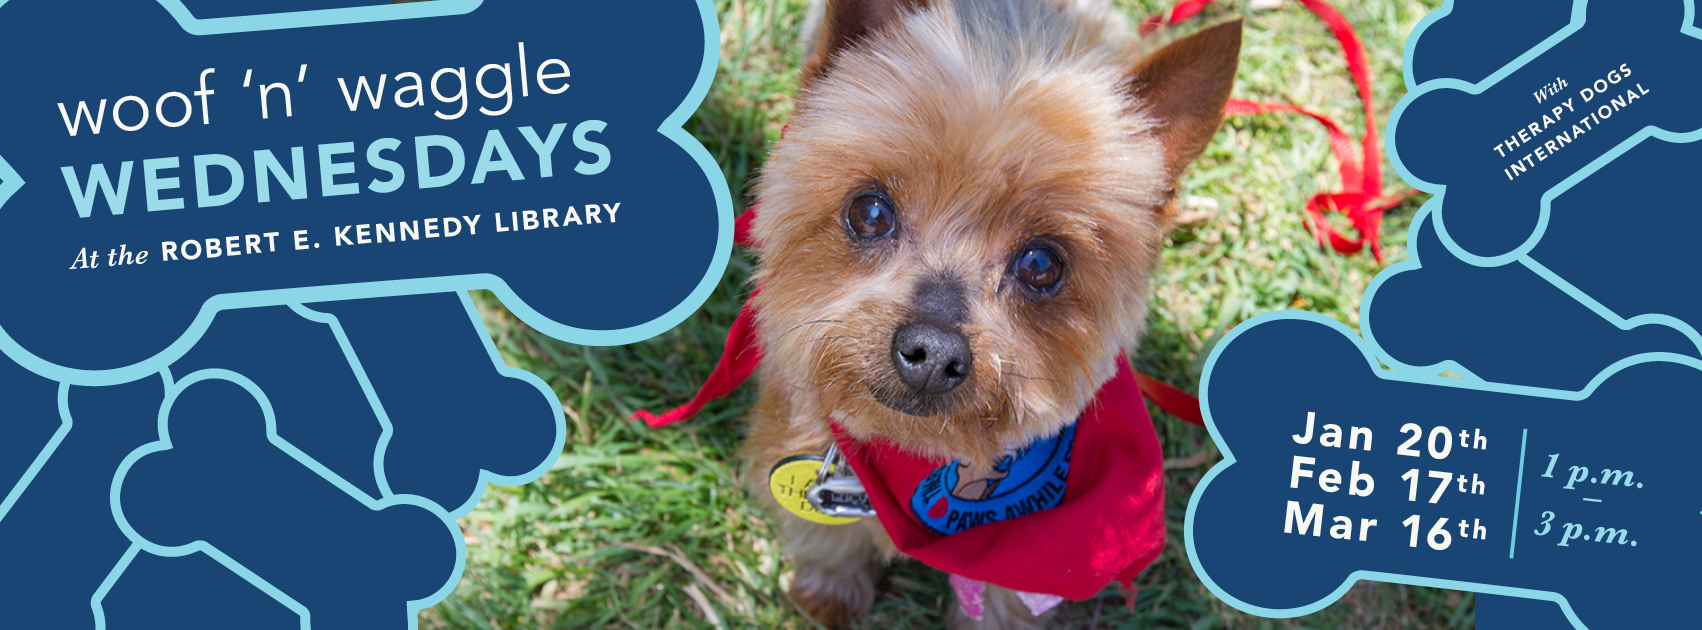 Dogs at the library Cuddle your stress away Three dates in winter